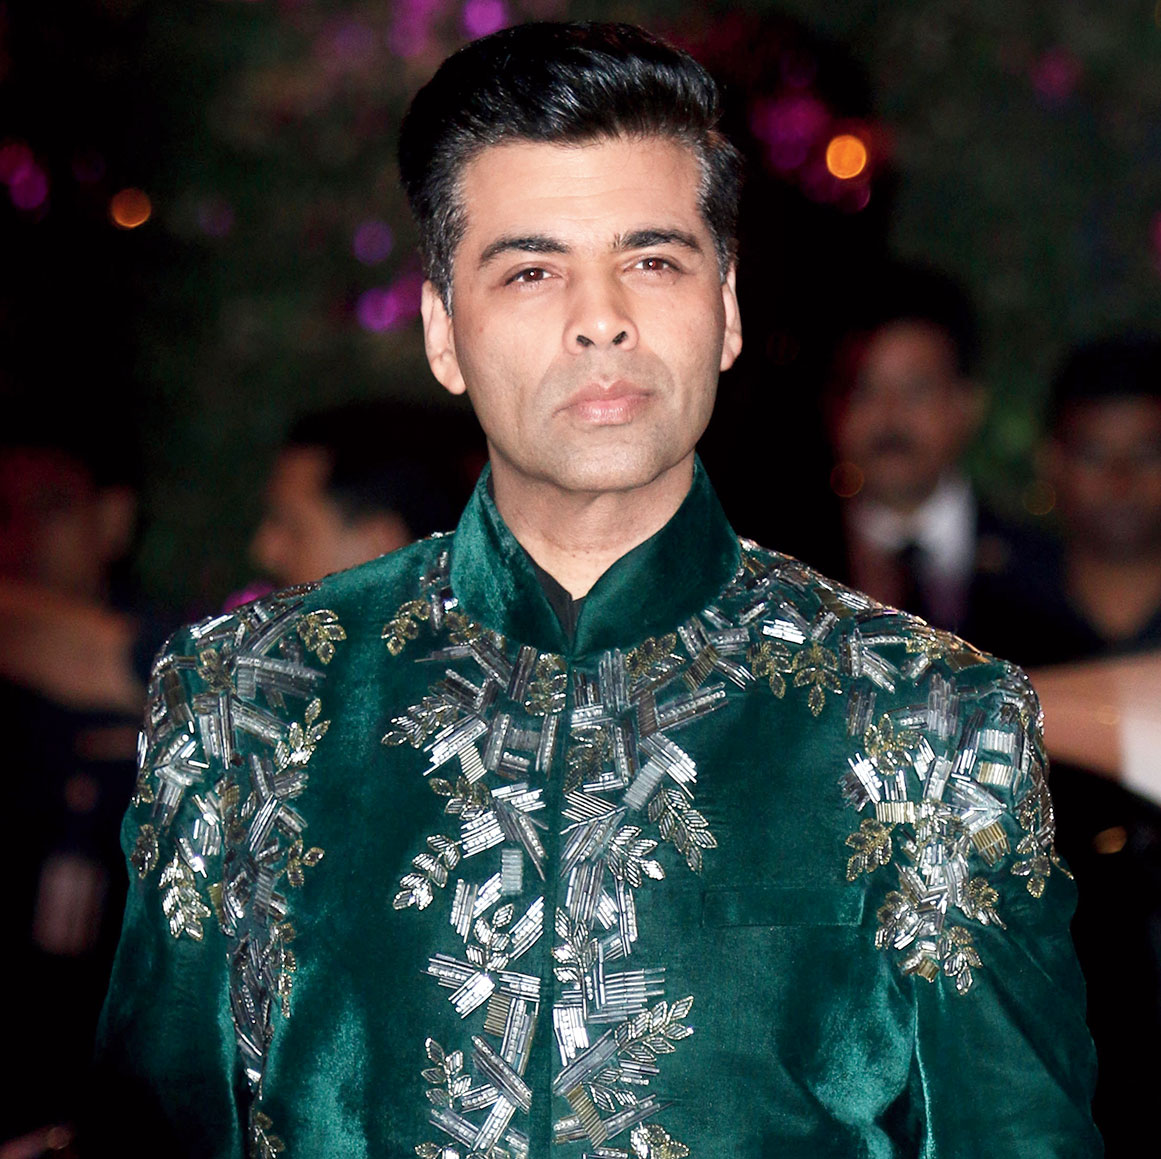 Karan Johar looooves clothes that are making a statement. He likes colours, heavy shoes and he enjoys himself! I feel he is the only director who kind of manages that style and flamboyance